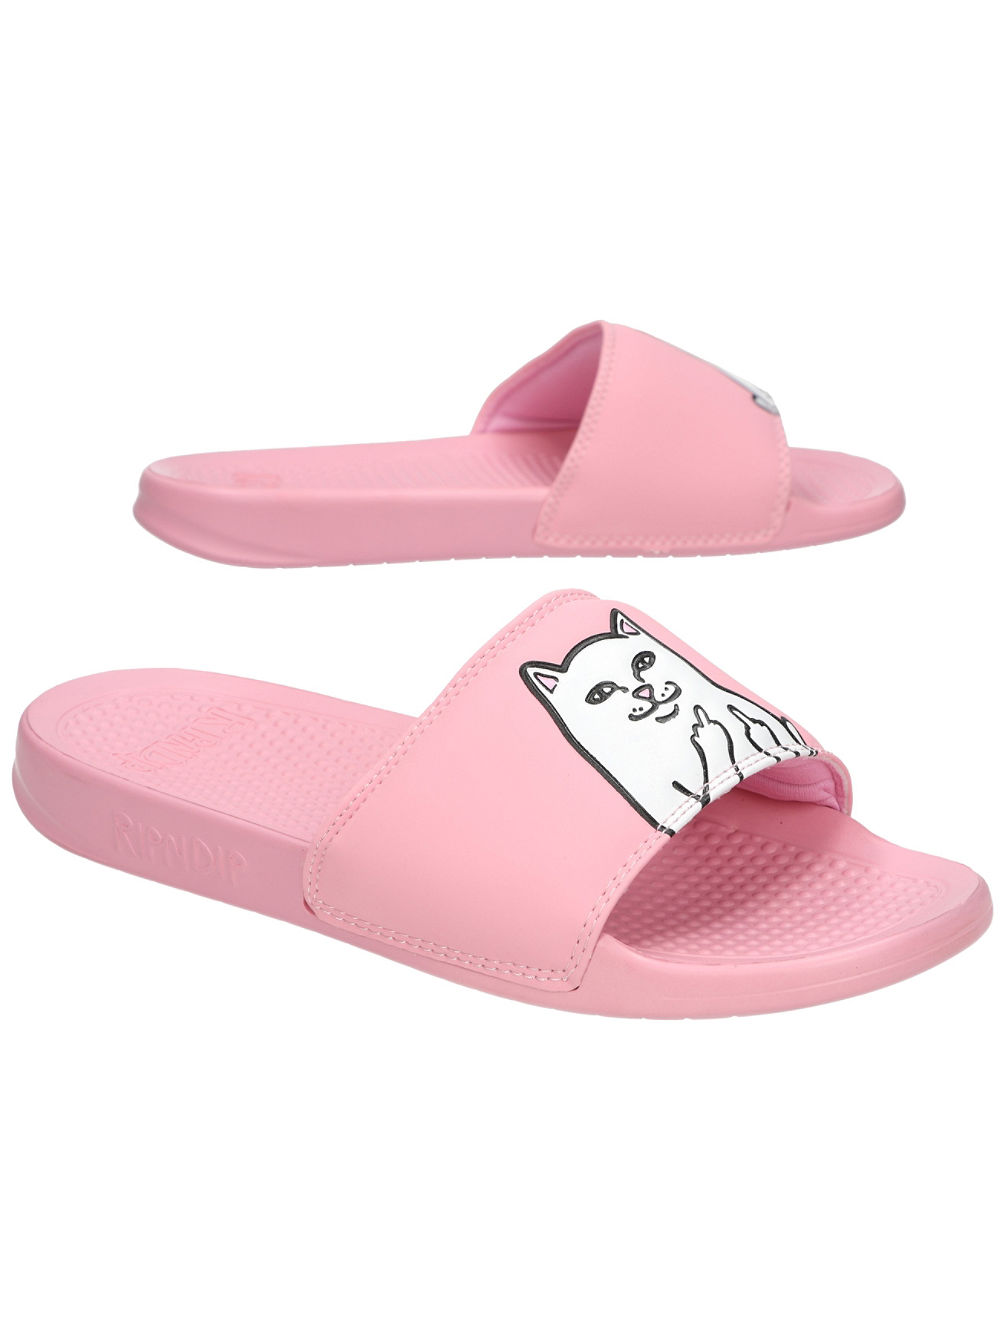 Lord Nermal Slides Sandals